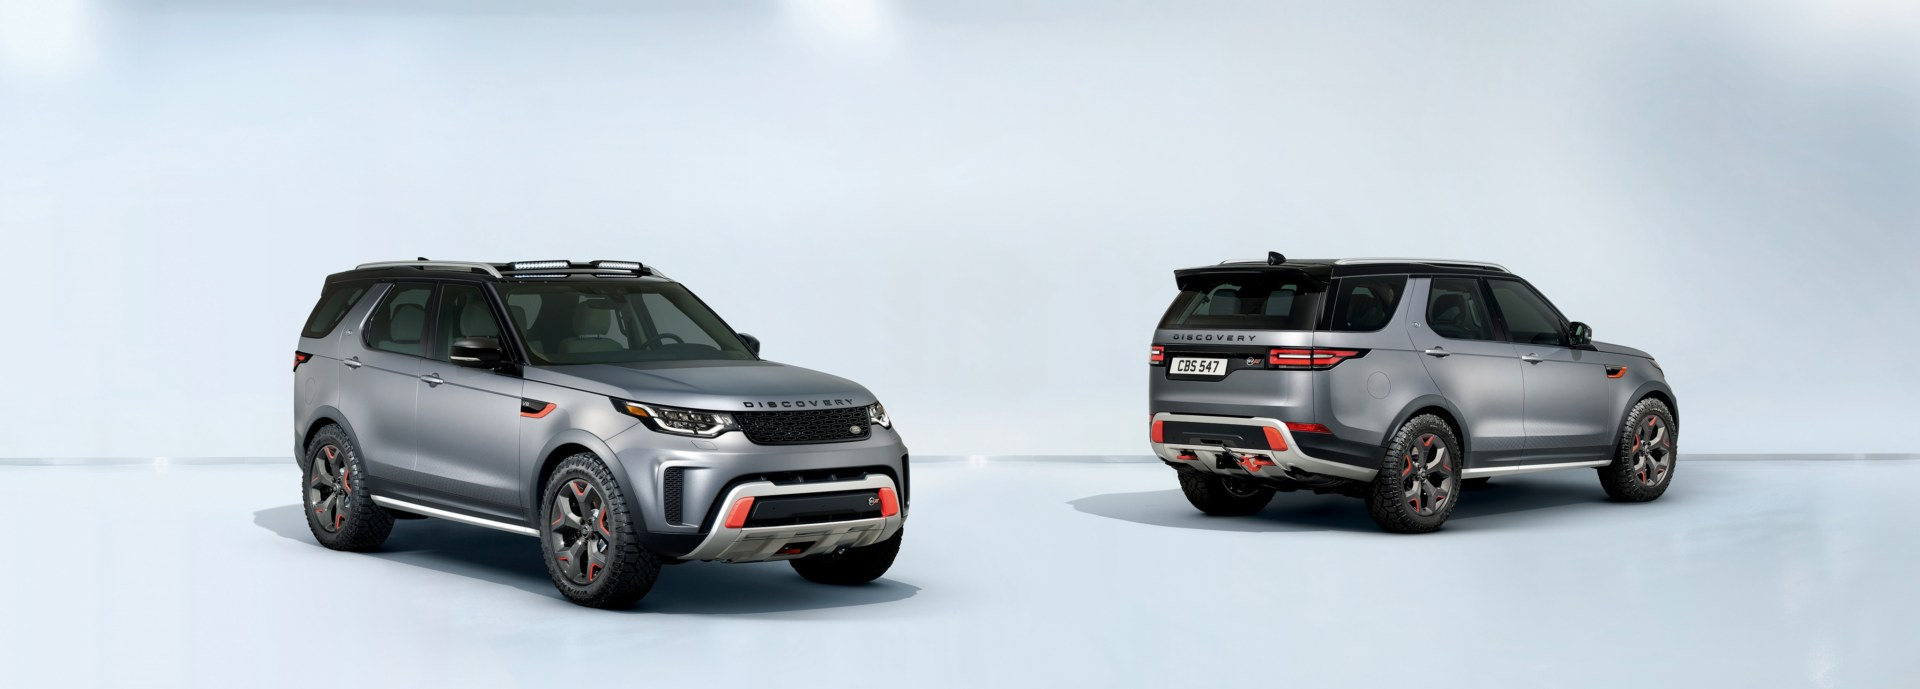 land_rover_discovery_svx